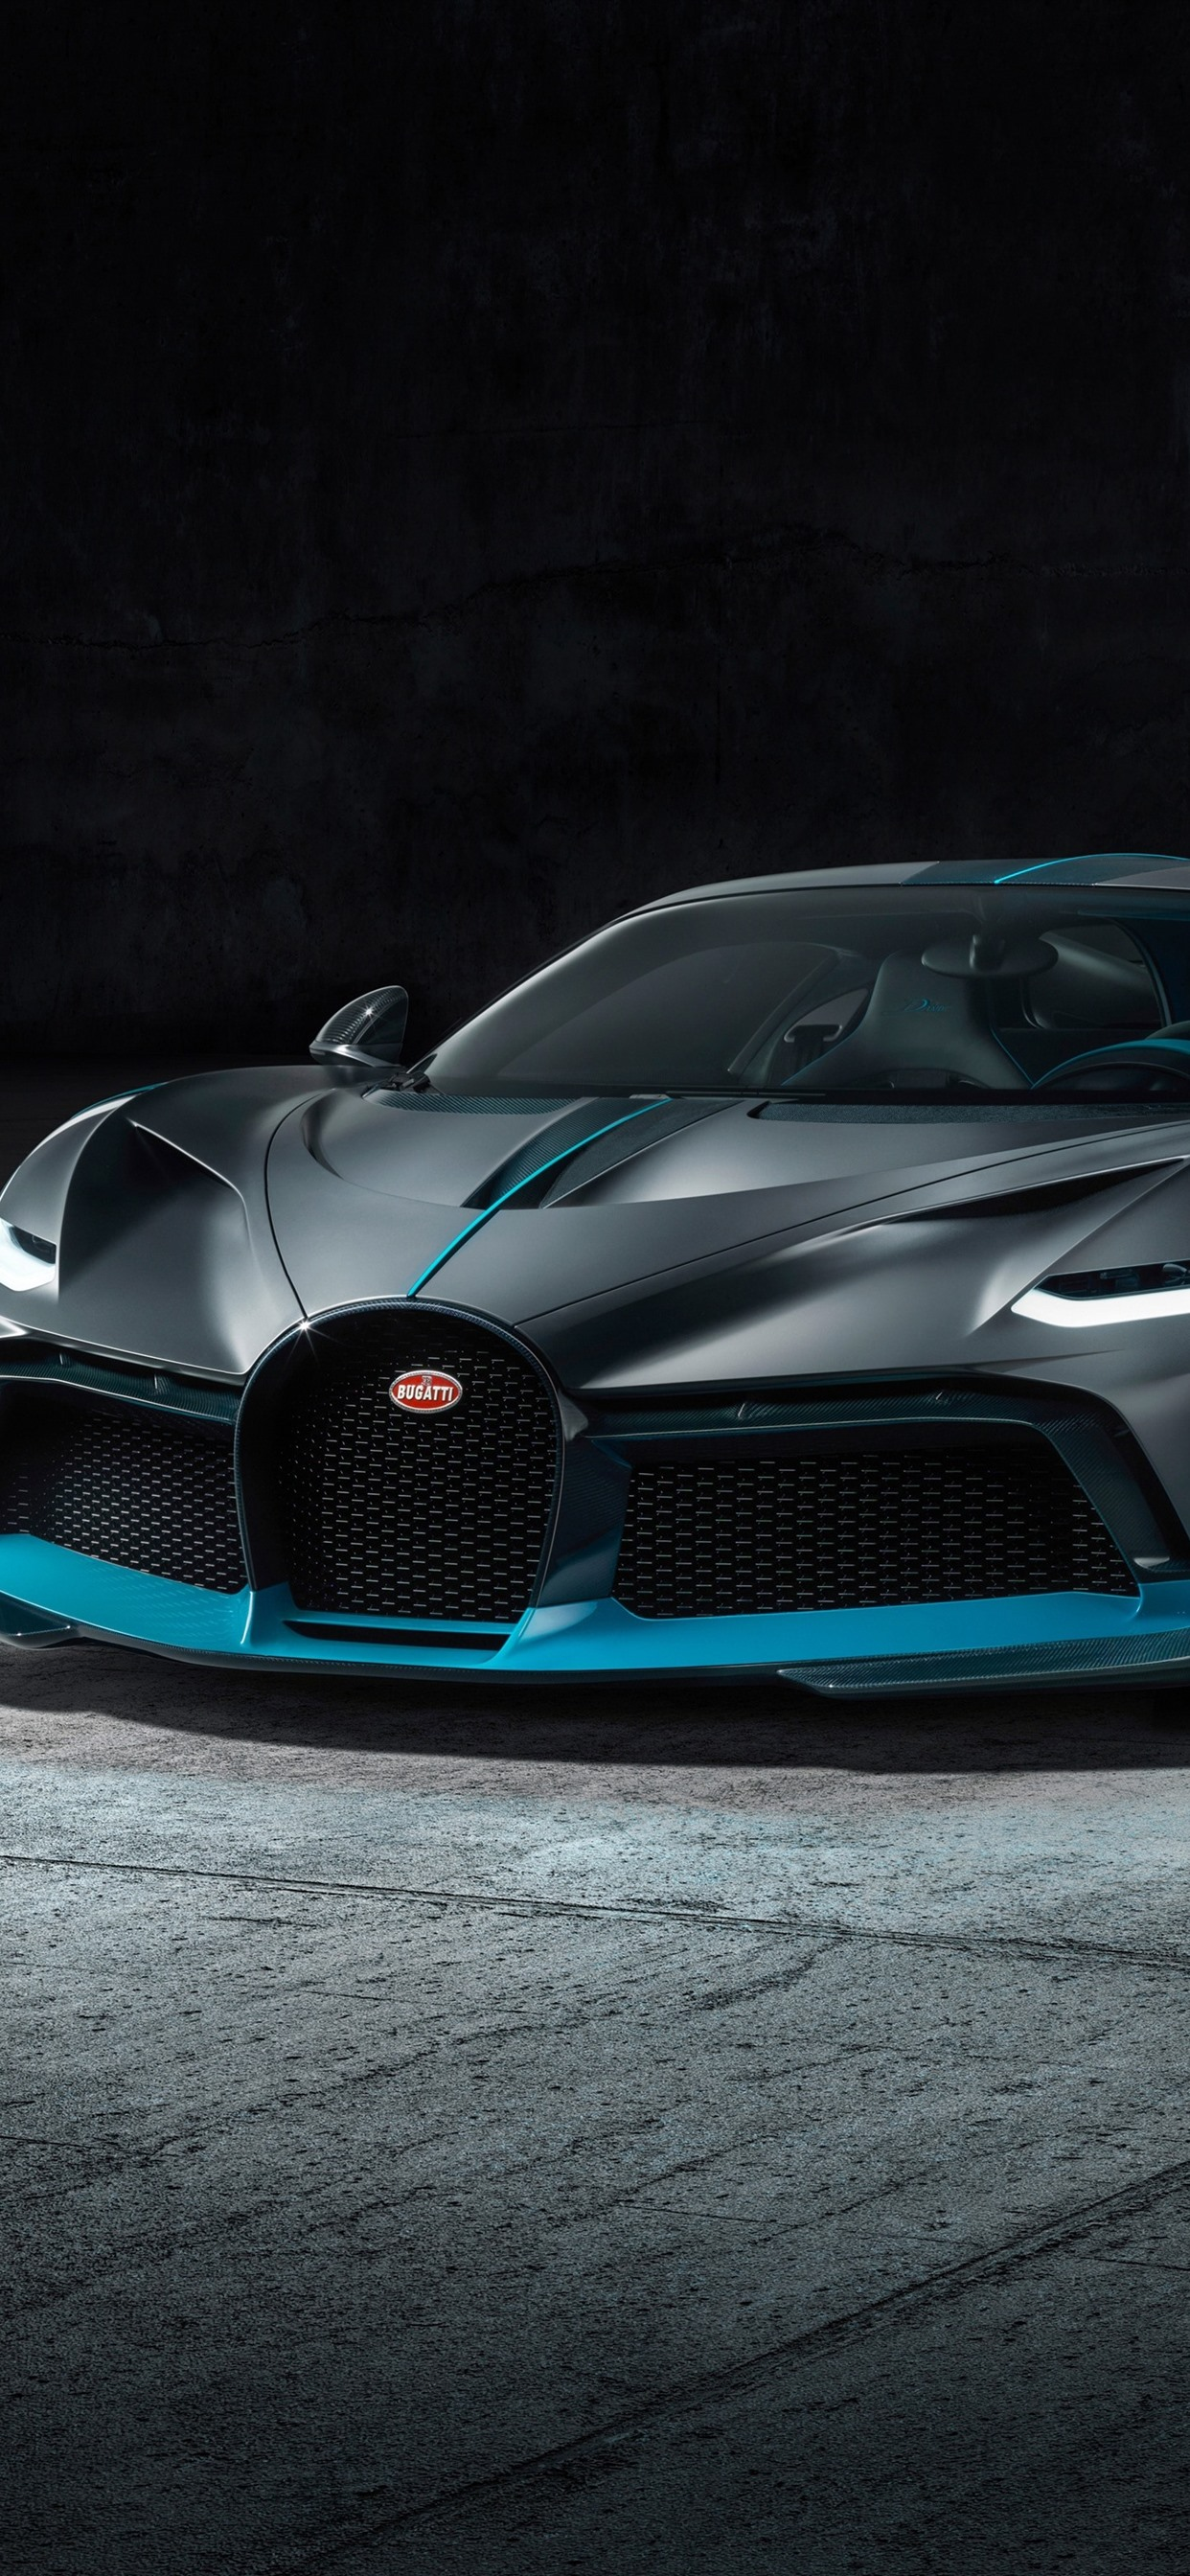 Download This Wallpaper Bugatti Divo Wallpaper 4k 1994510 Hd Wallpaper Backgrounds Download